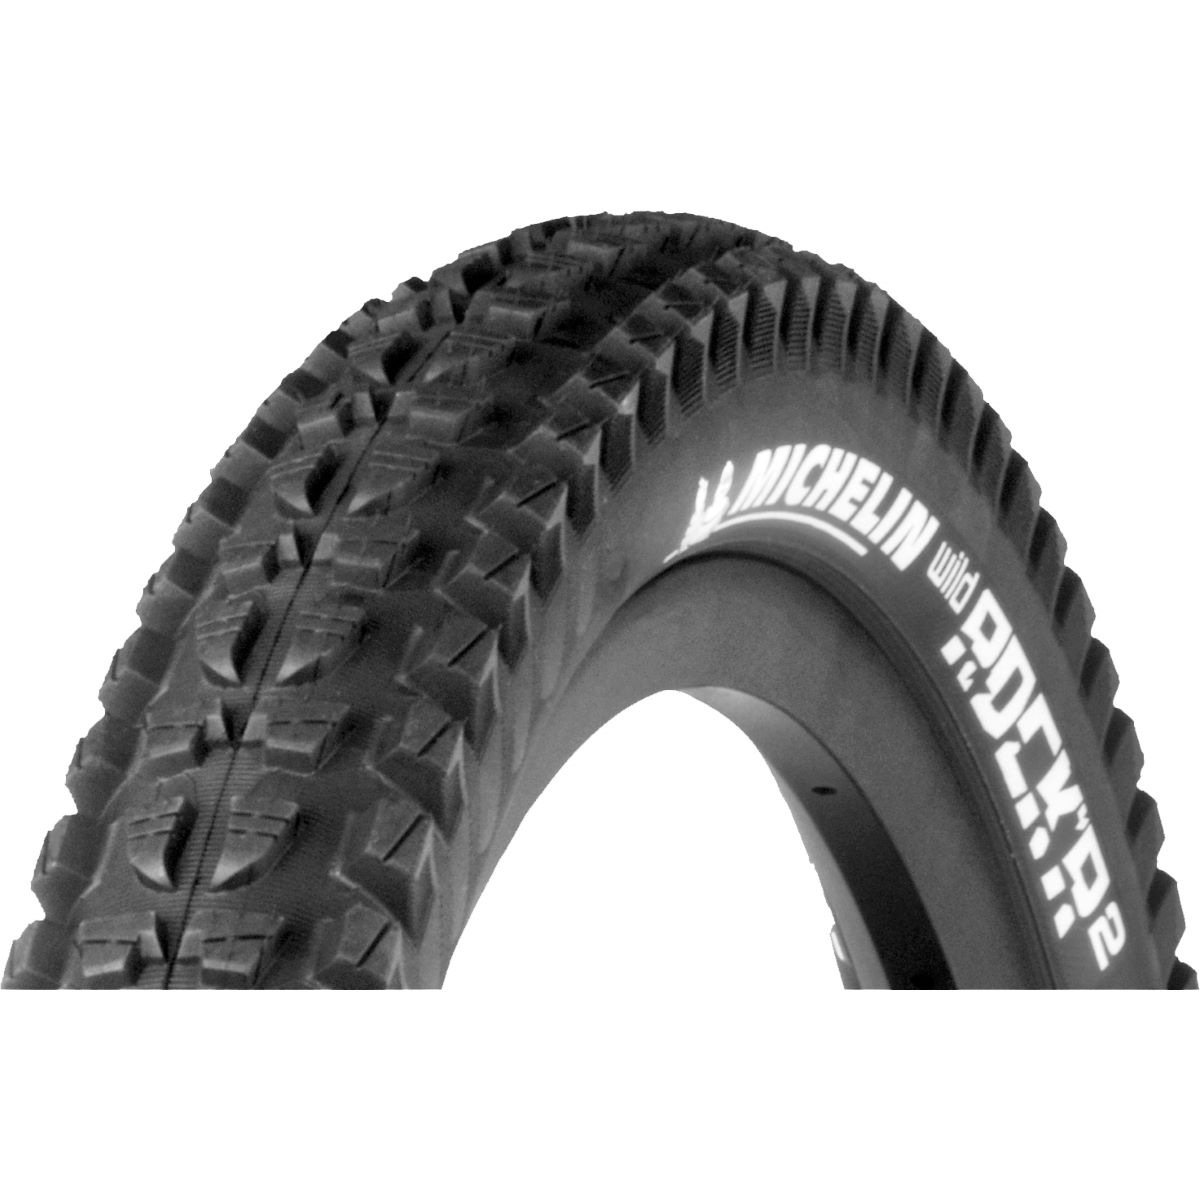 Pneu Michelin Wild Rock'r2 Advanced Reinforced Gum-X 29 pouces - 29 x 2.35 Noir Pneus VTT